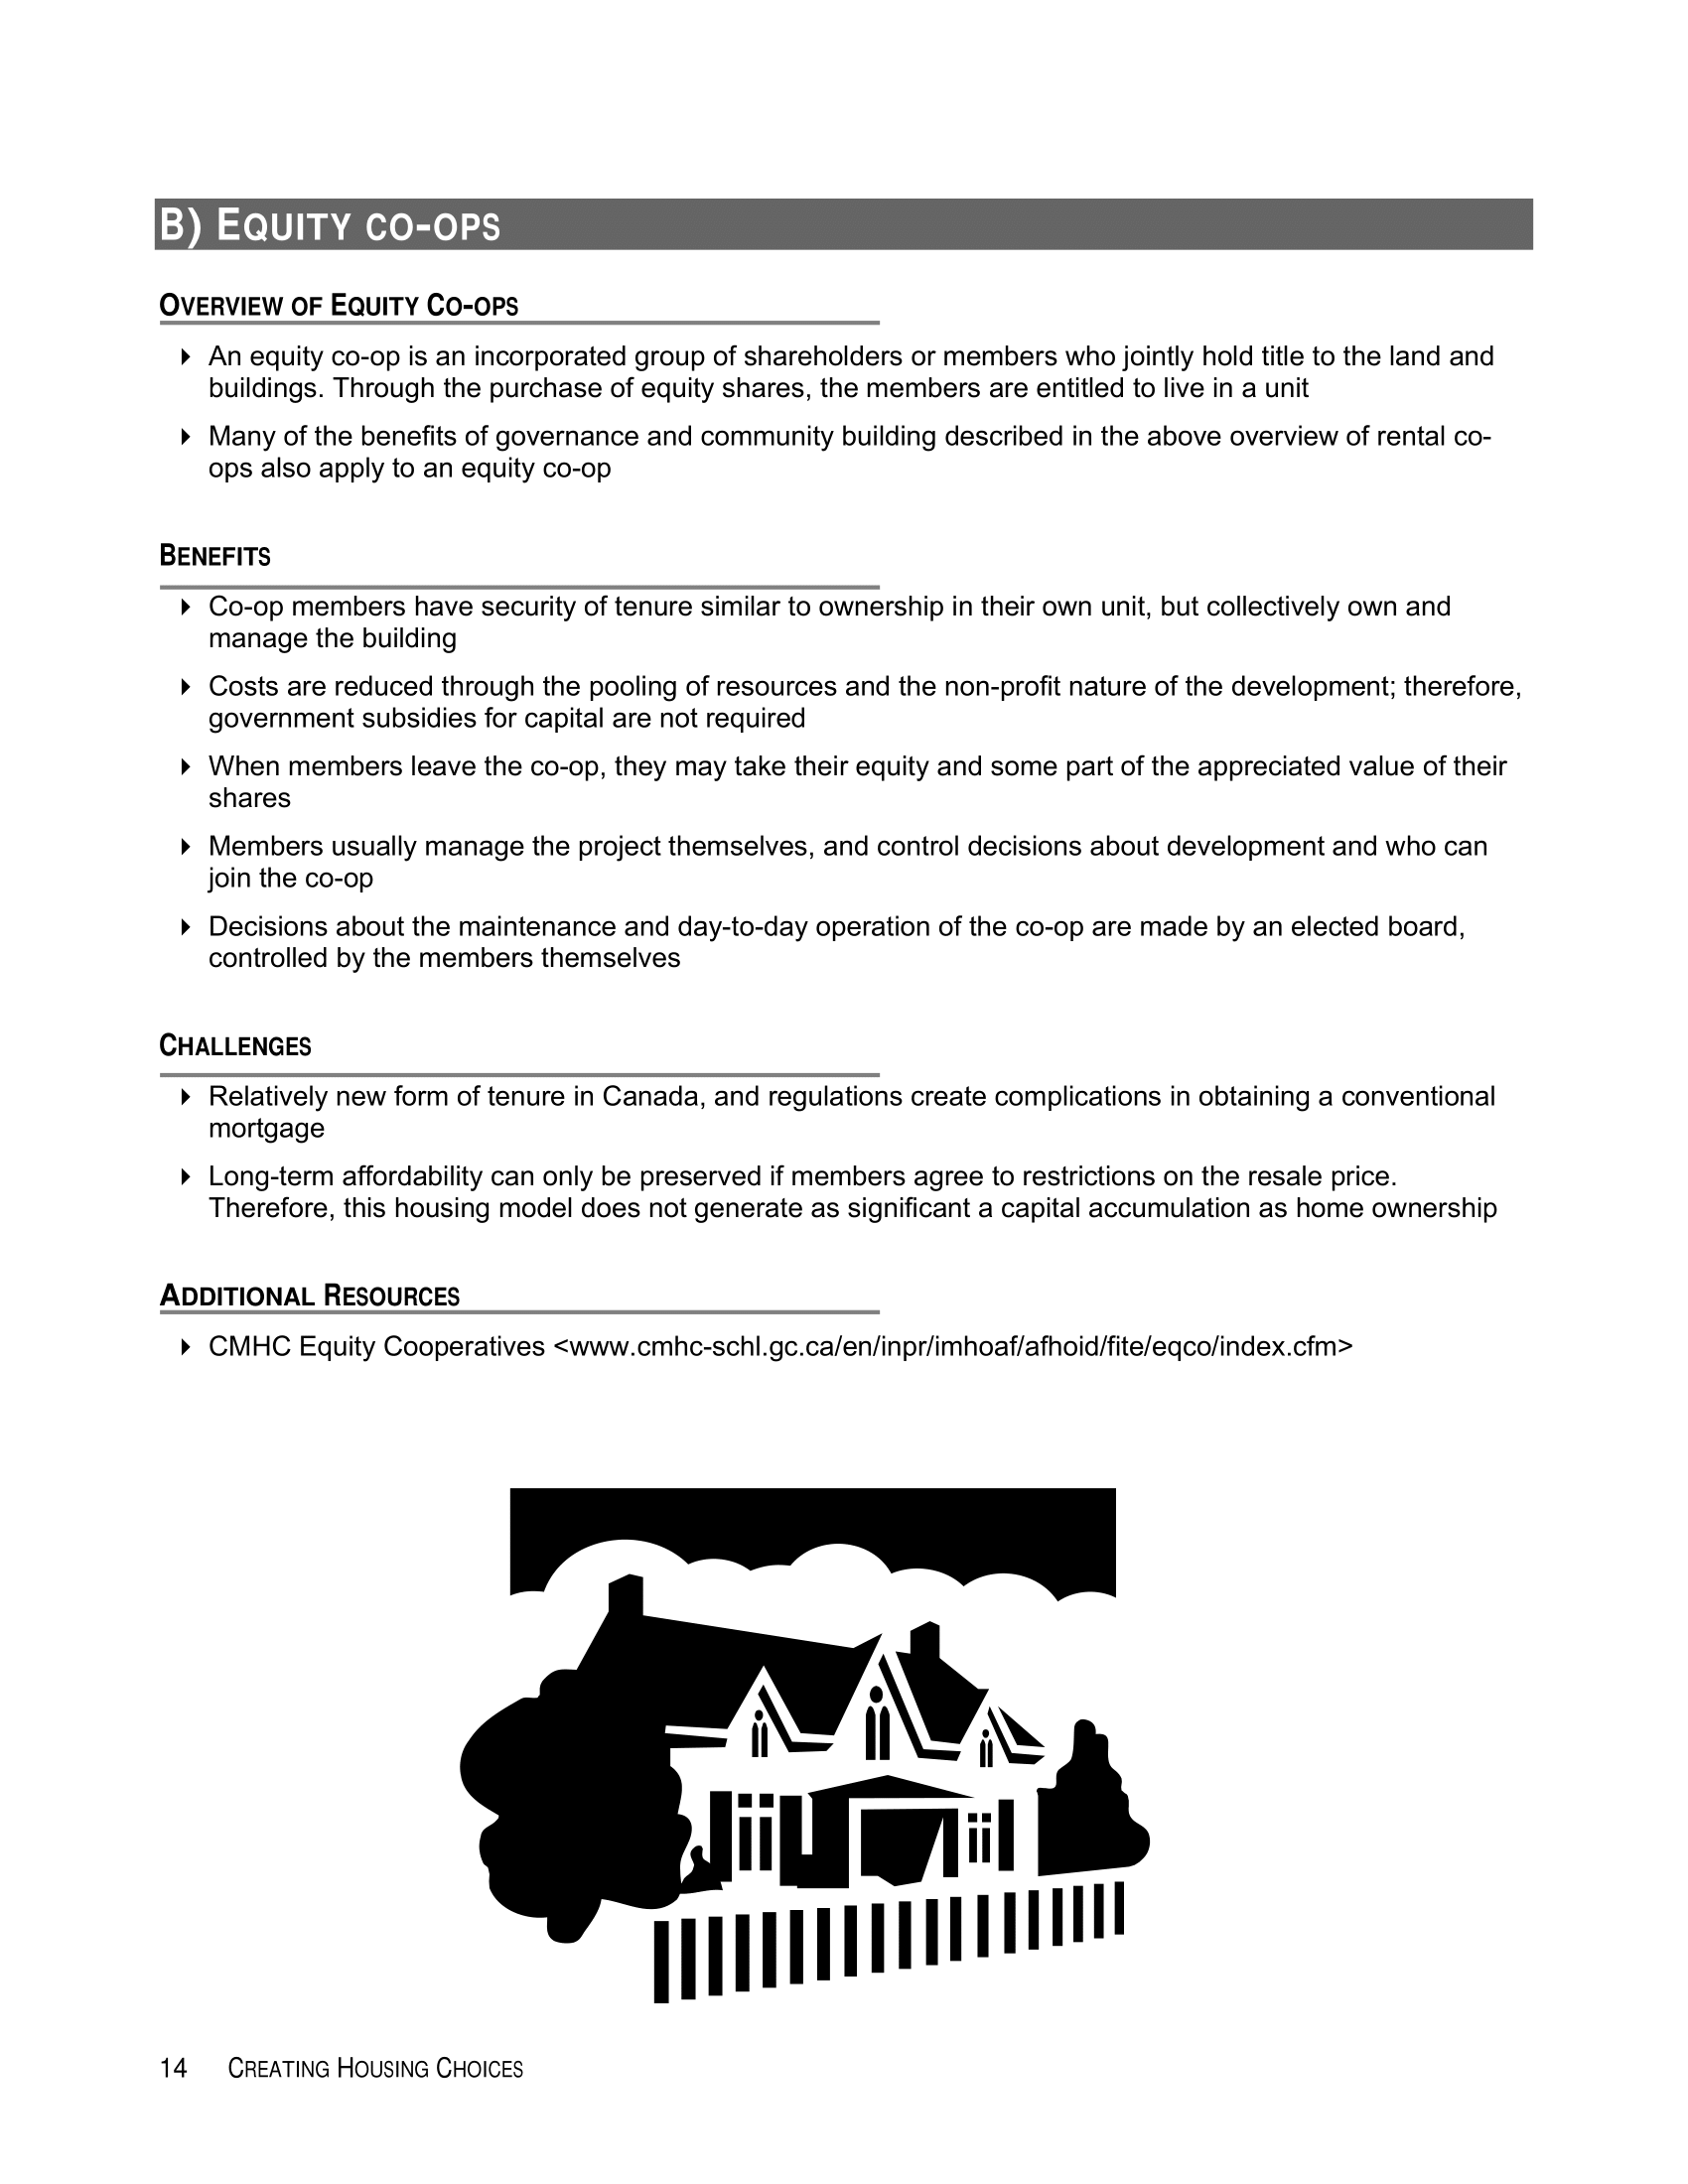 Creating Housing Choices - 2006-15.png